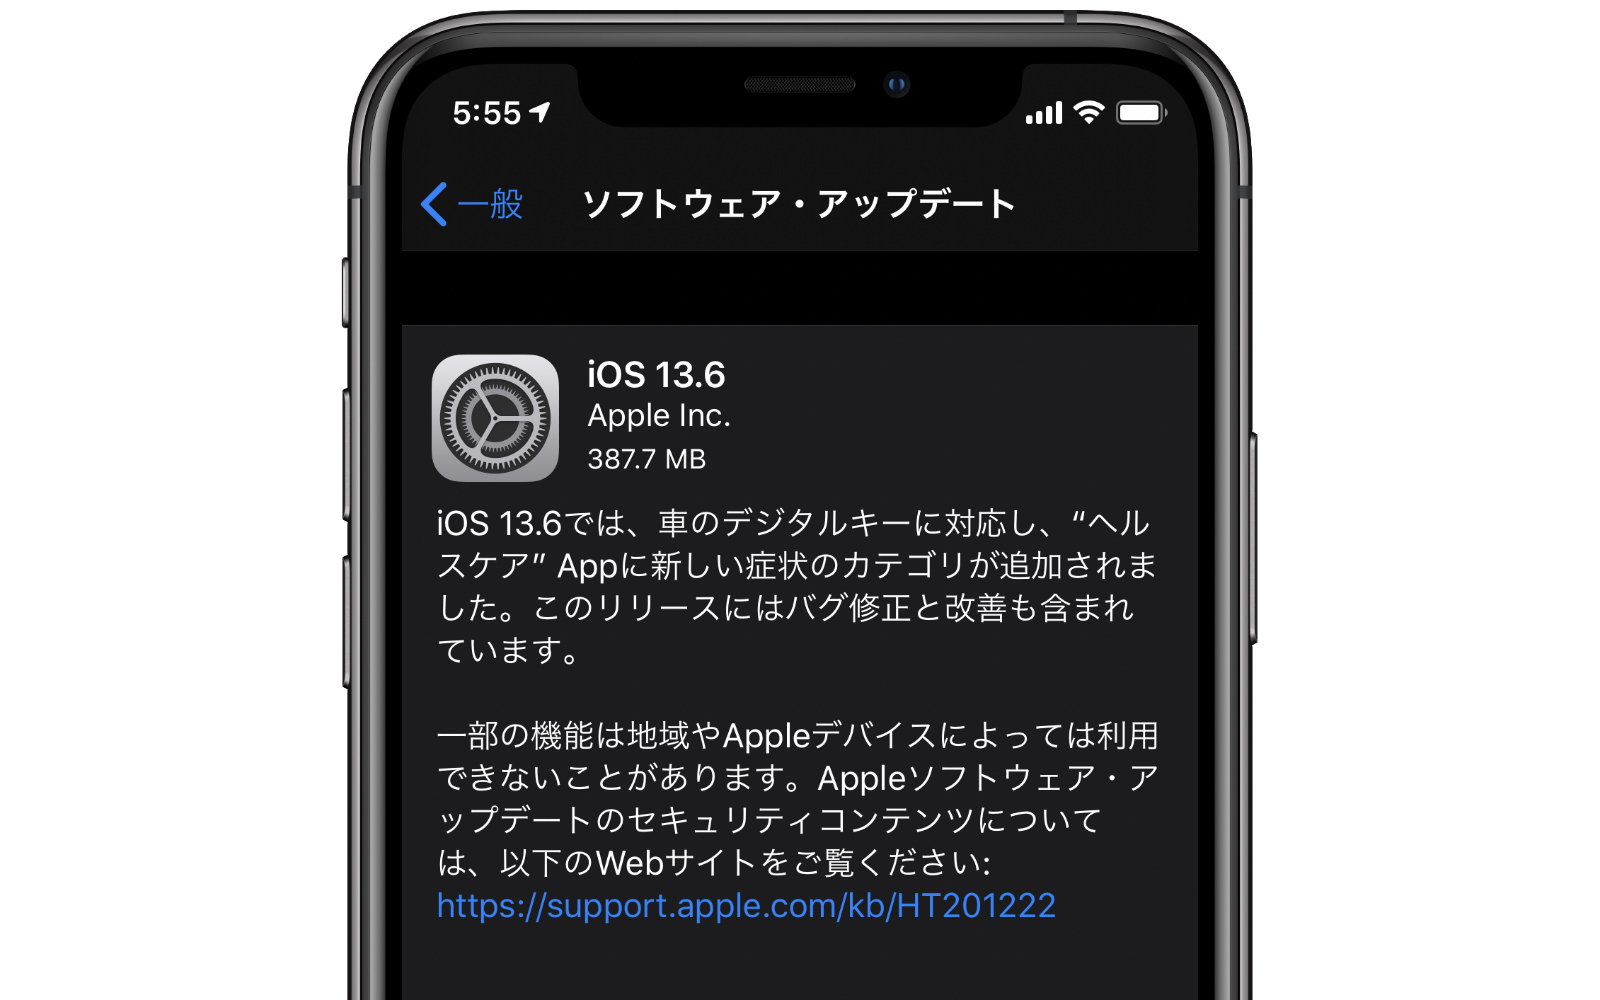 IOS13 6 official release